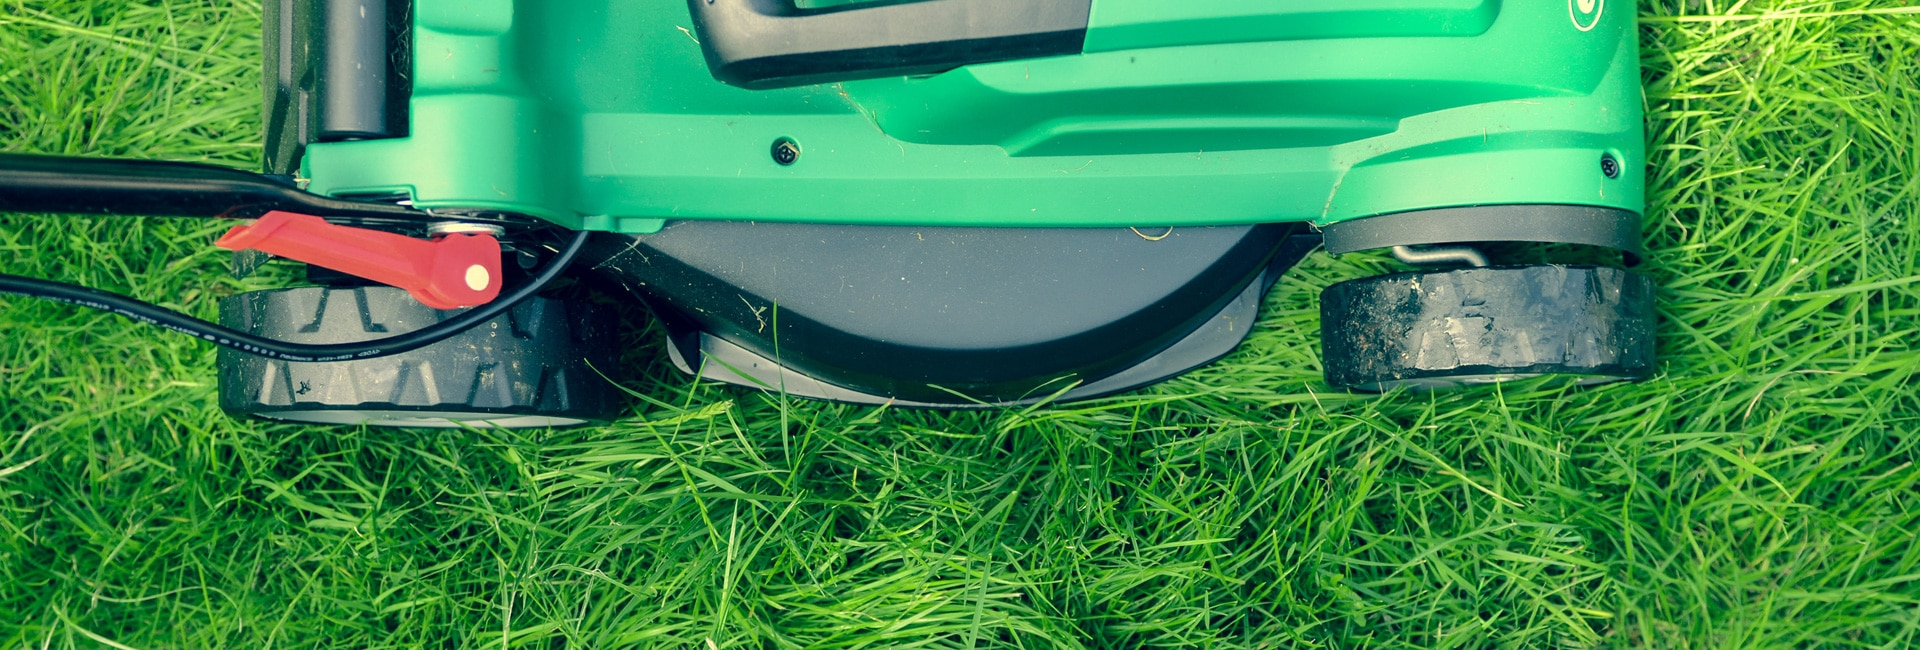 Lawn Mowing Tips - Lawn mower